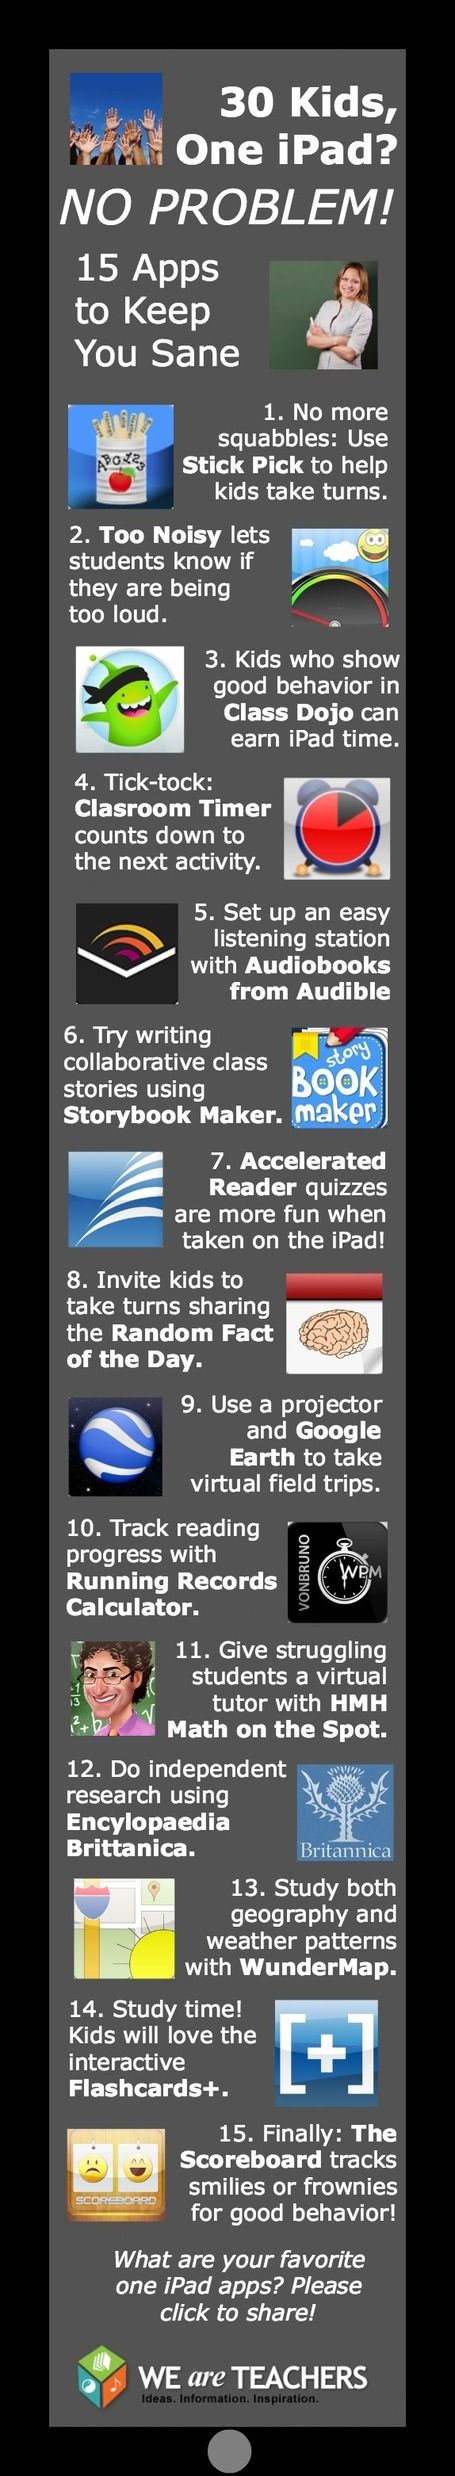 15 Apps for the One iPad Classroom - We Are Teachers | iPad Lesson Ideas | Scoop.it